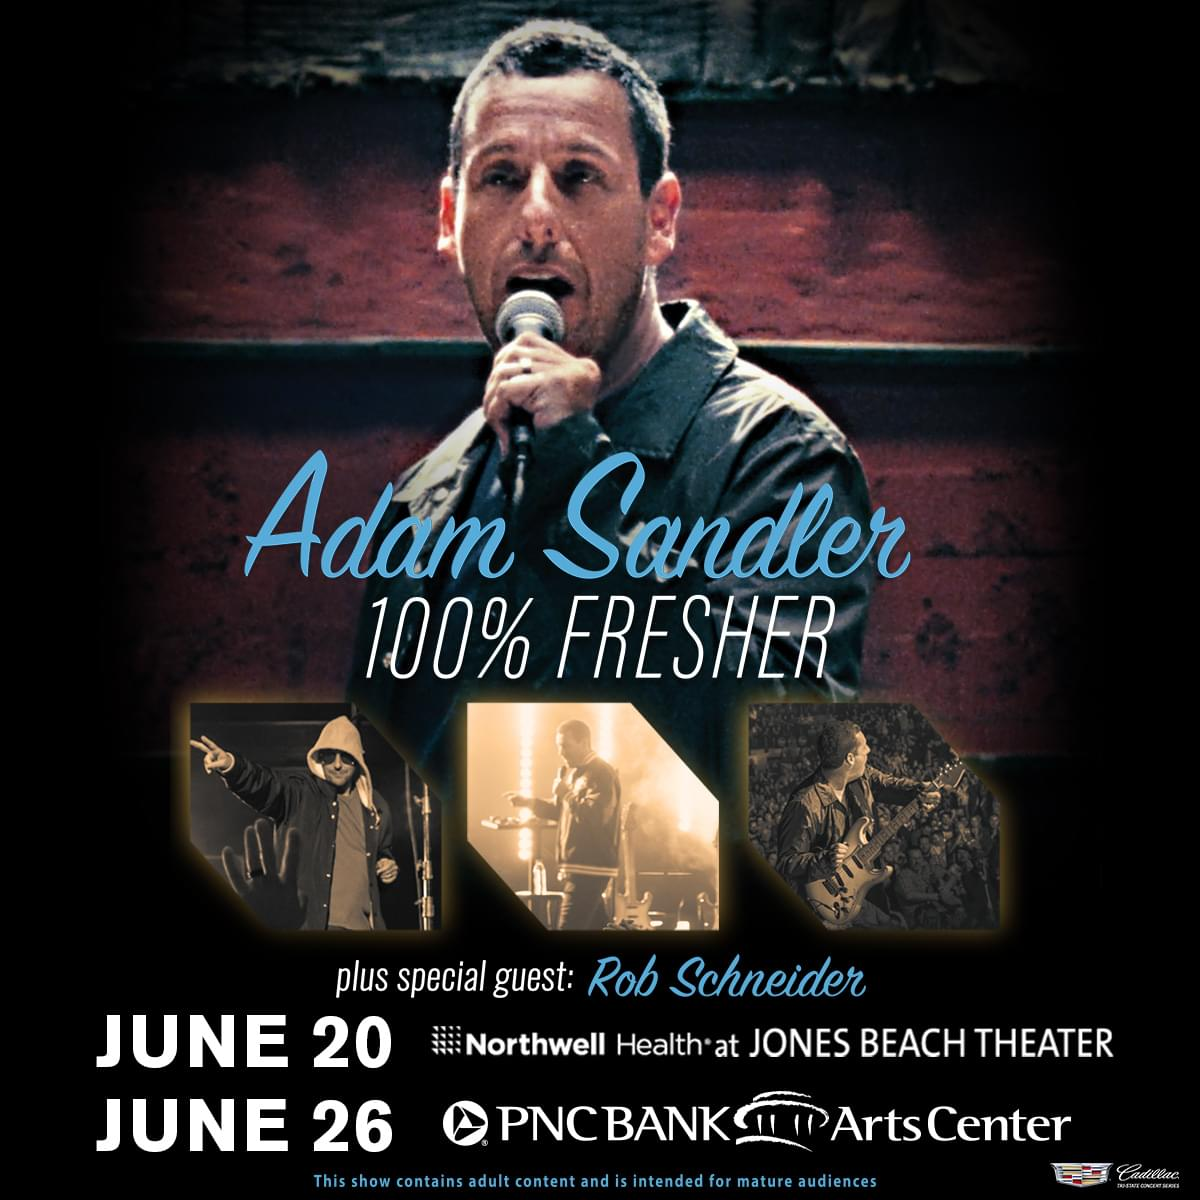 Win Tickets to See Adam Sandler Live!